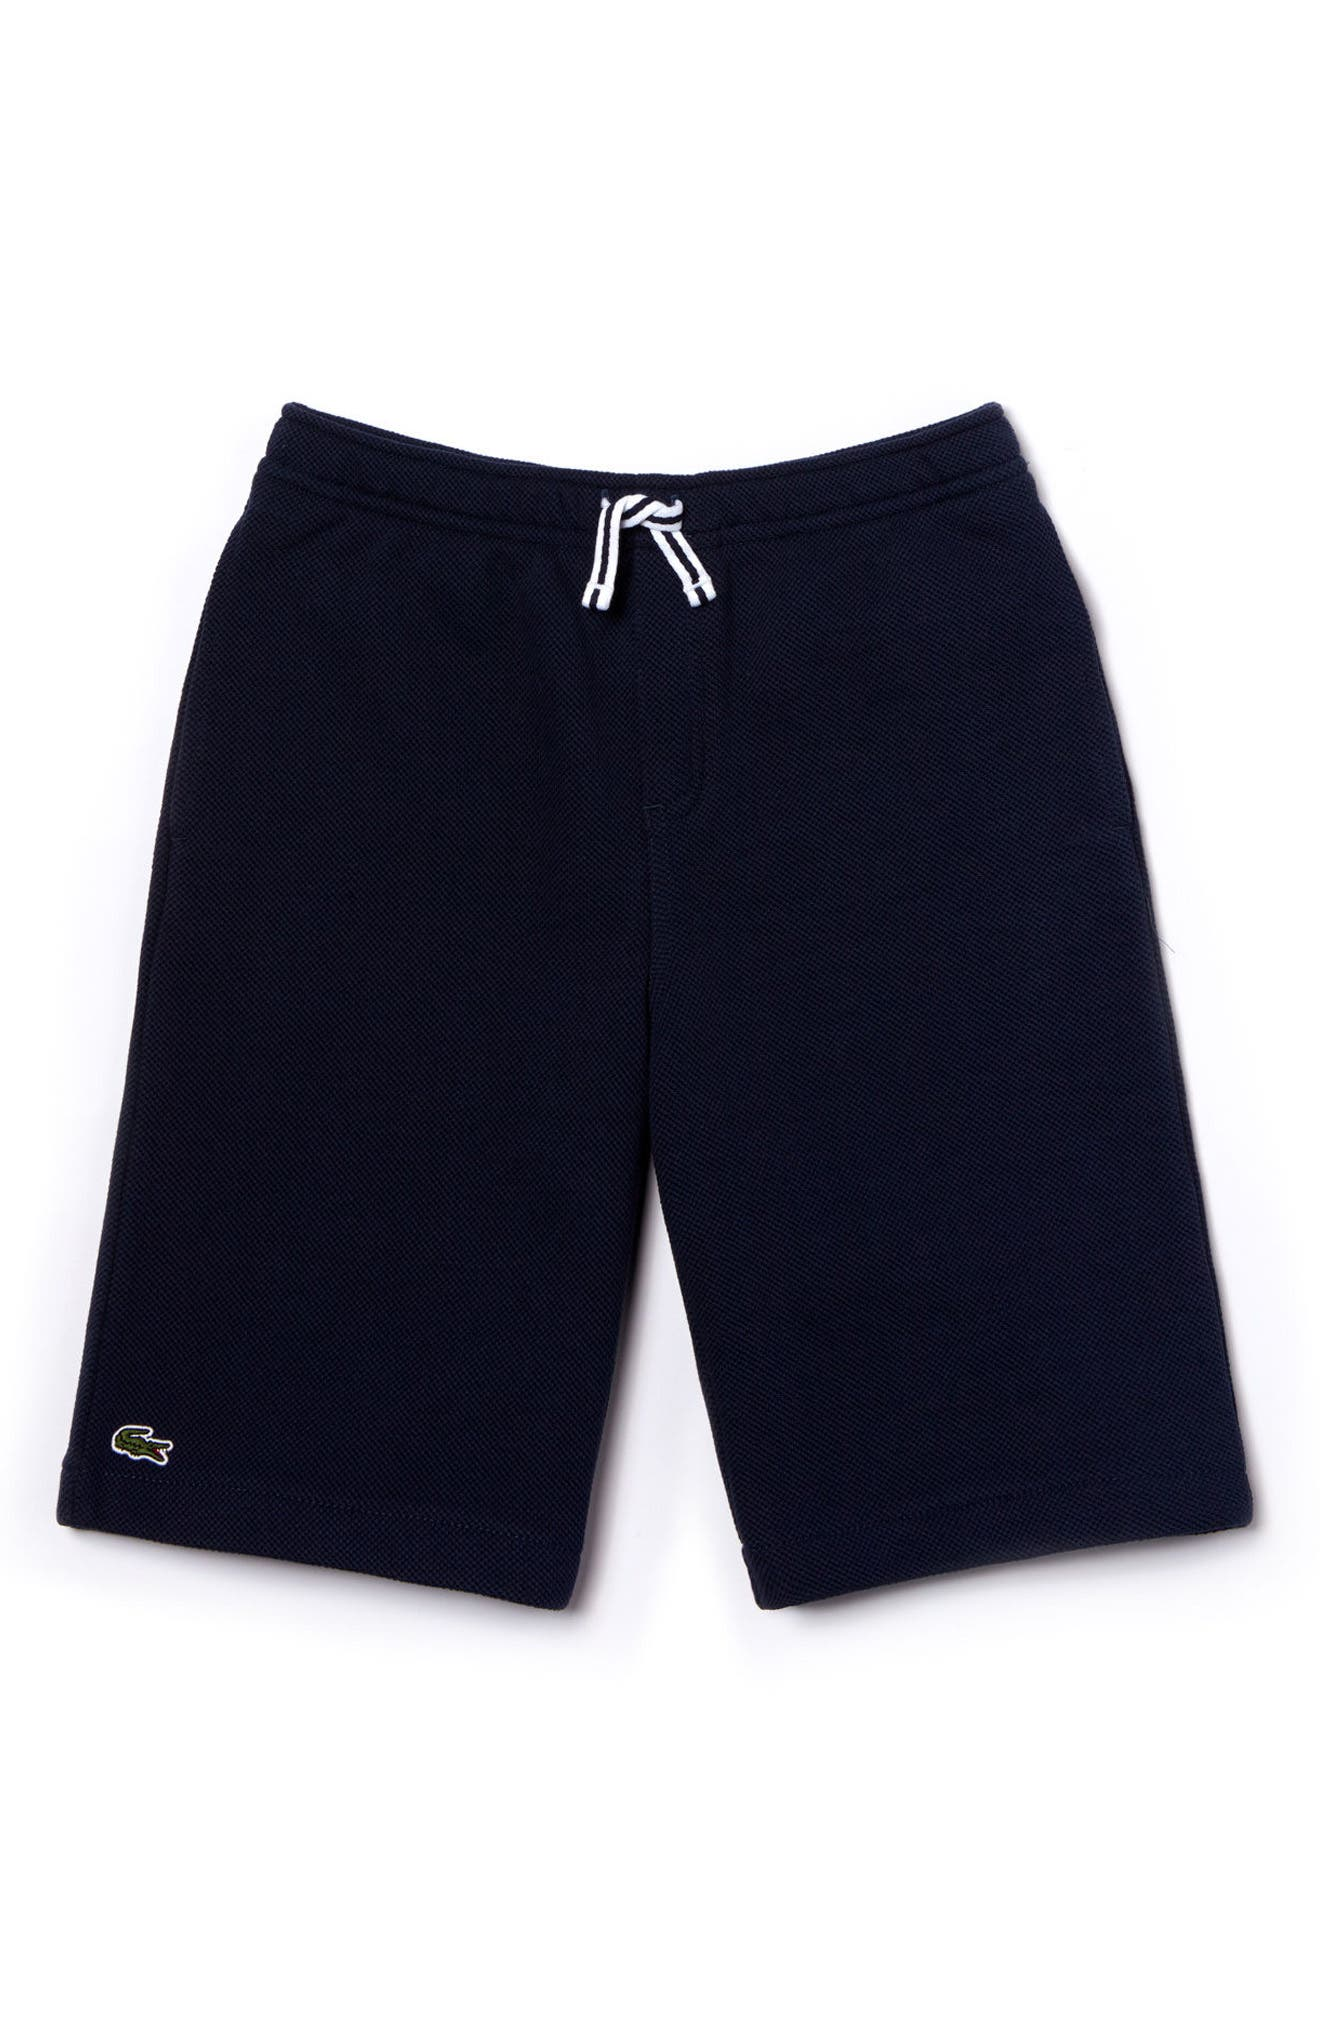 Lacoste Knit Bermuda Shorts (Big Boys)